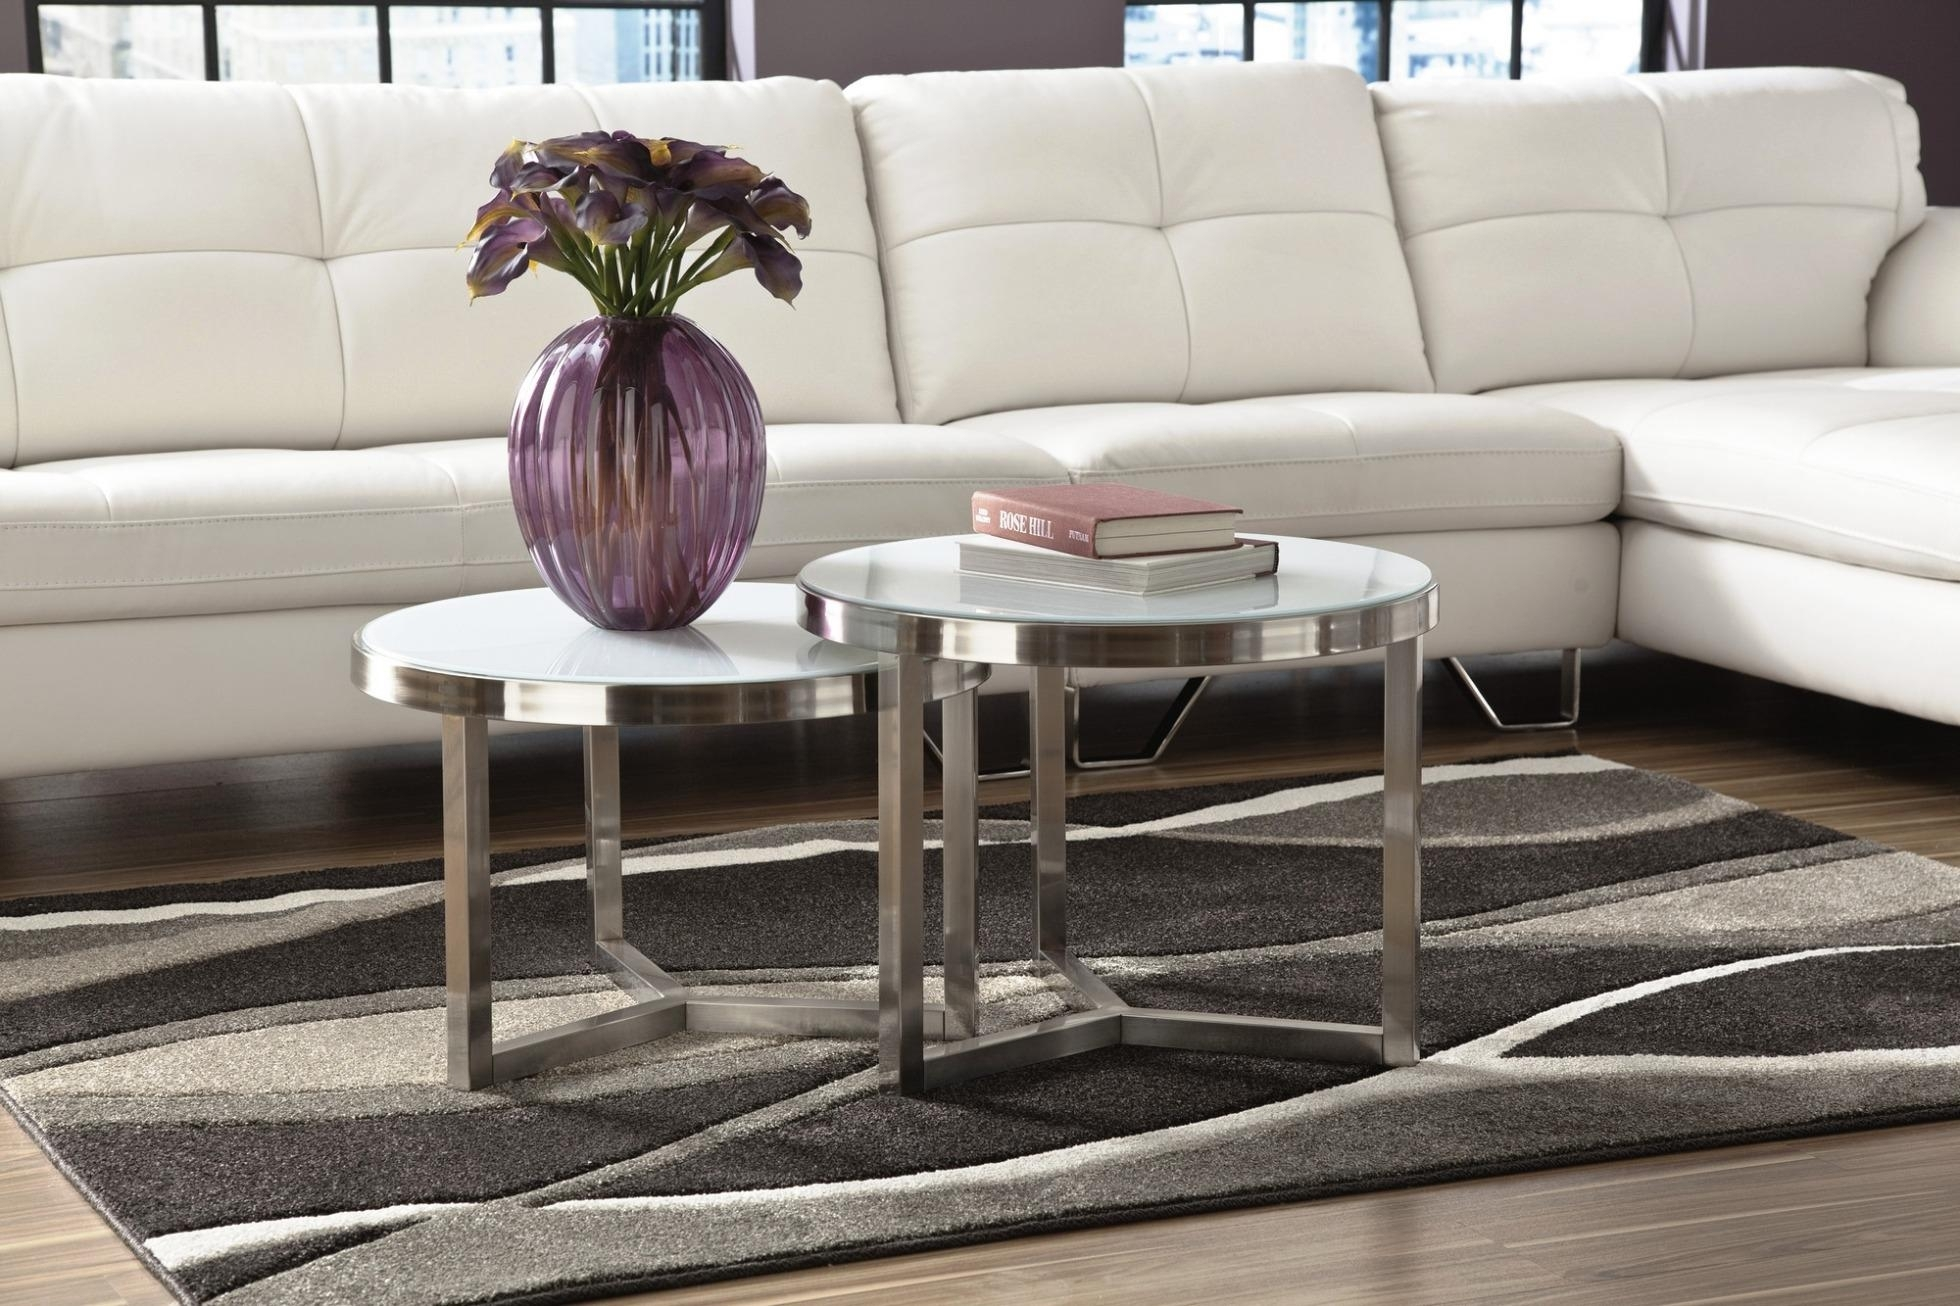 33 Gorgeous Glass Nesting Coffee Tables Table Bed And Shower for Set Of Nesting Coffee Tables (Image 2 of 30)